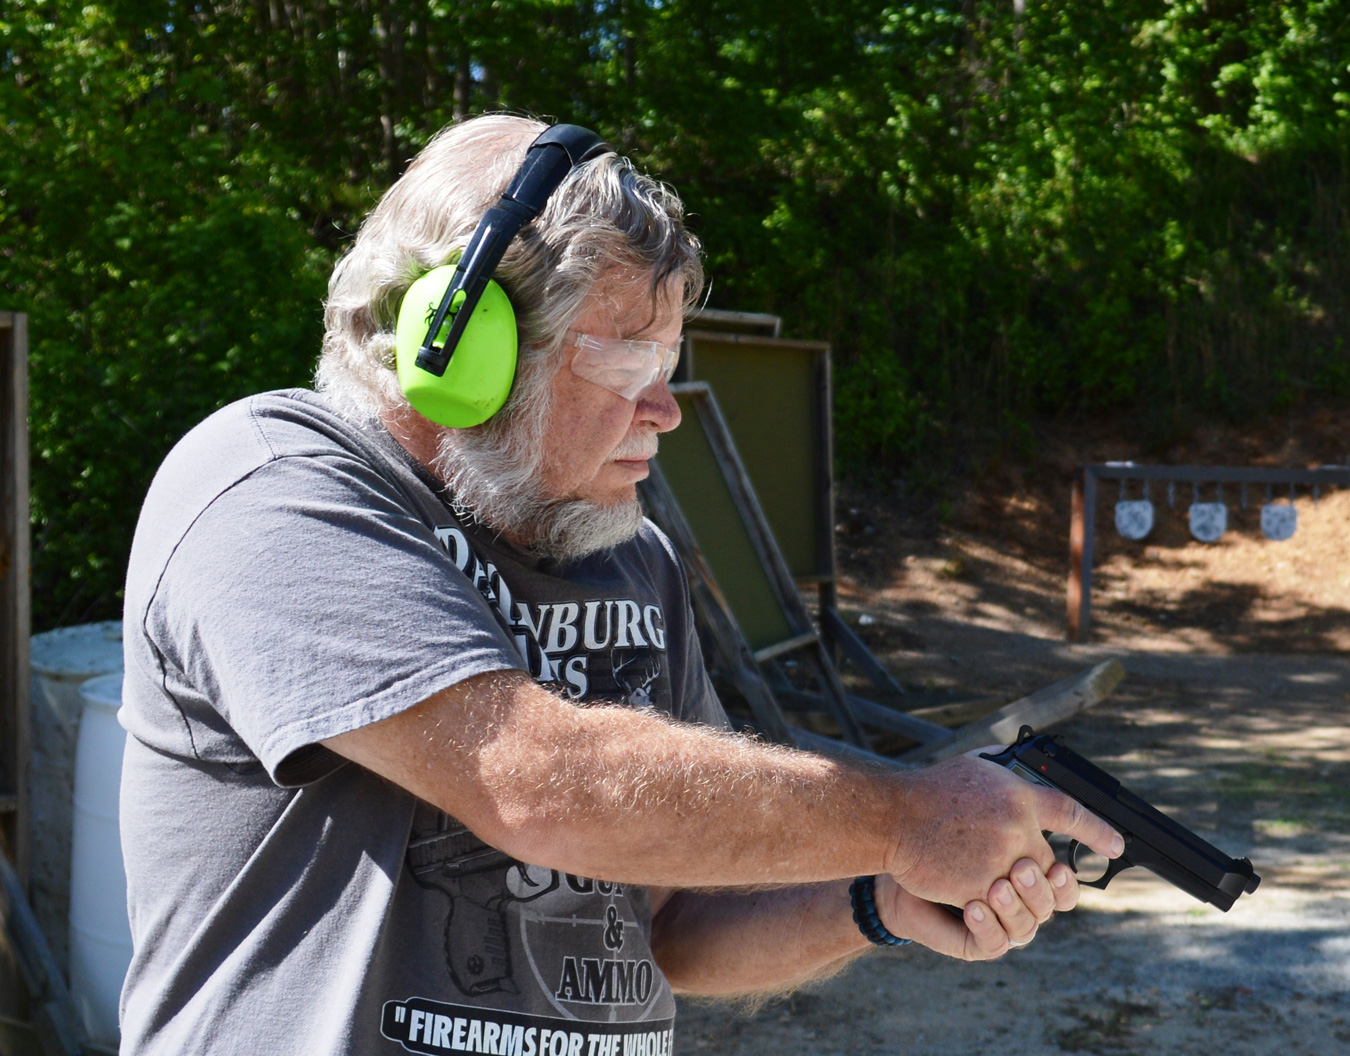 Bob Campbell holding the Beretta 92 pistol at a low ready